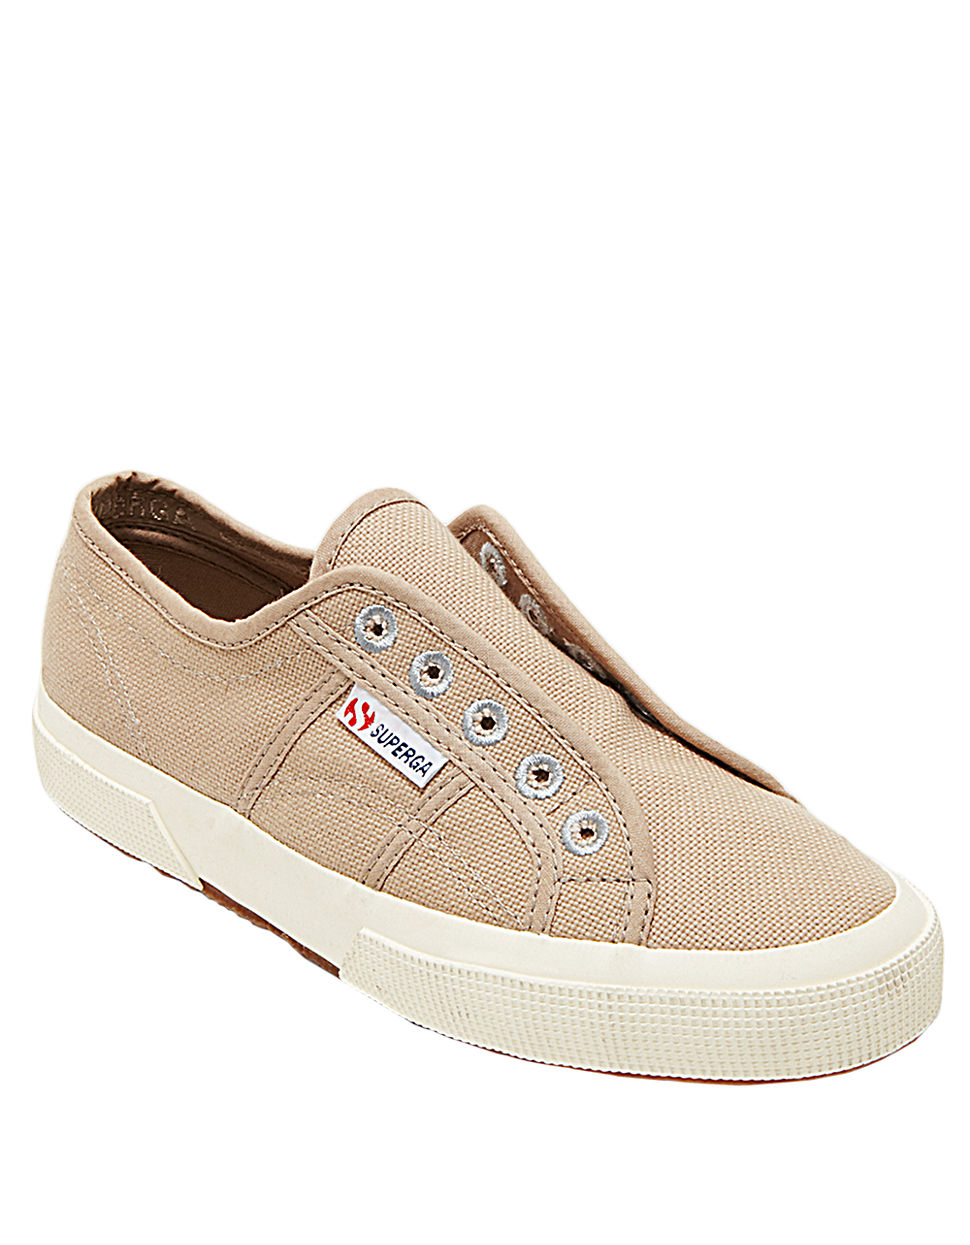 superga cotu slip on tennis shoes in beige wheat lyst